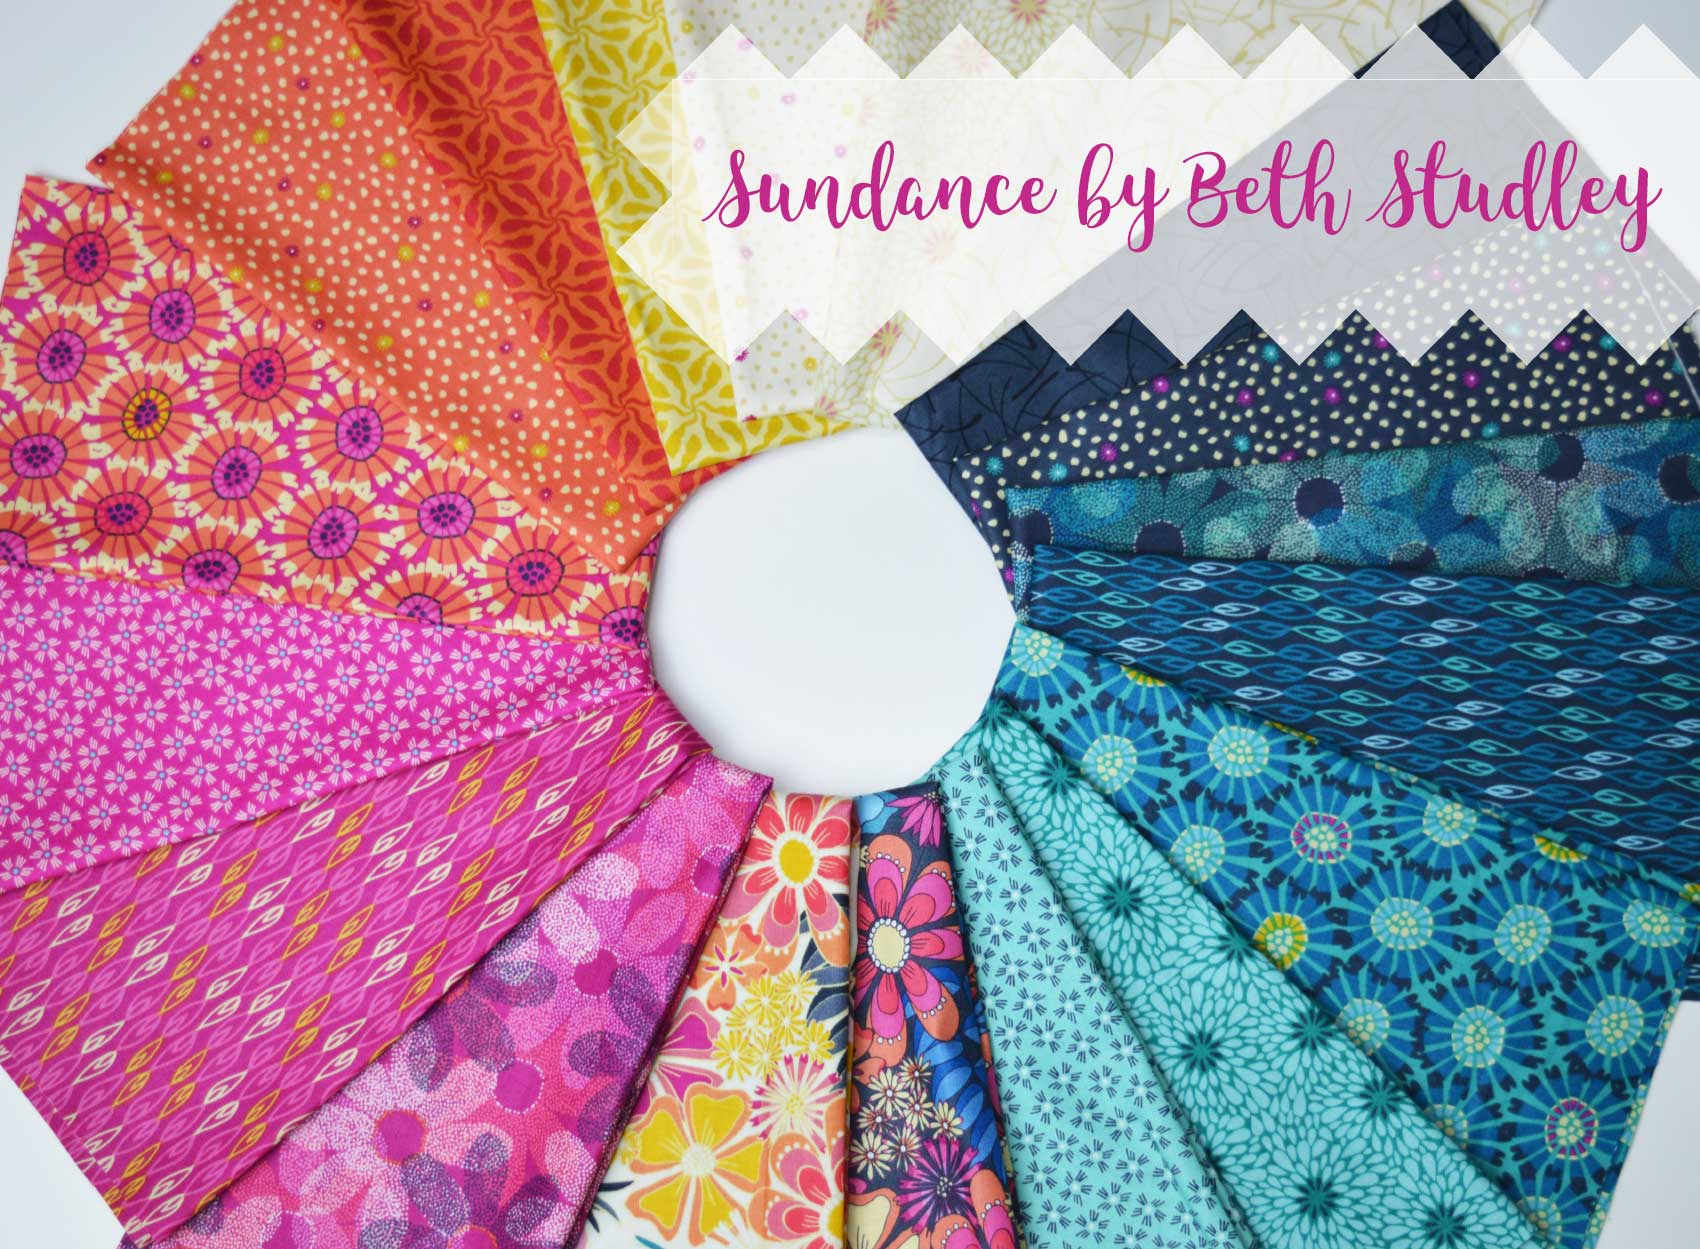 Holm Sown Online Fabric Shop - Sundance by Beth Studley for Makower UK / Andover Fabrics